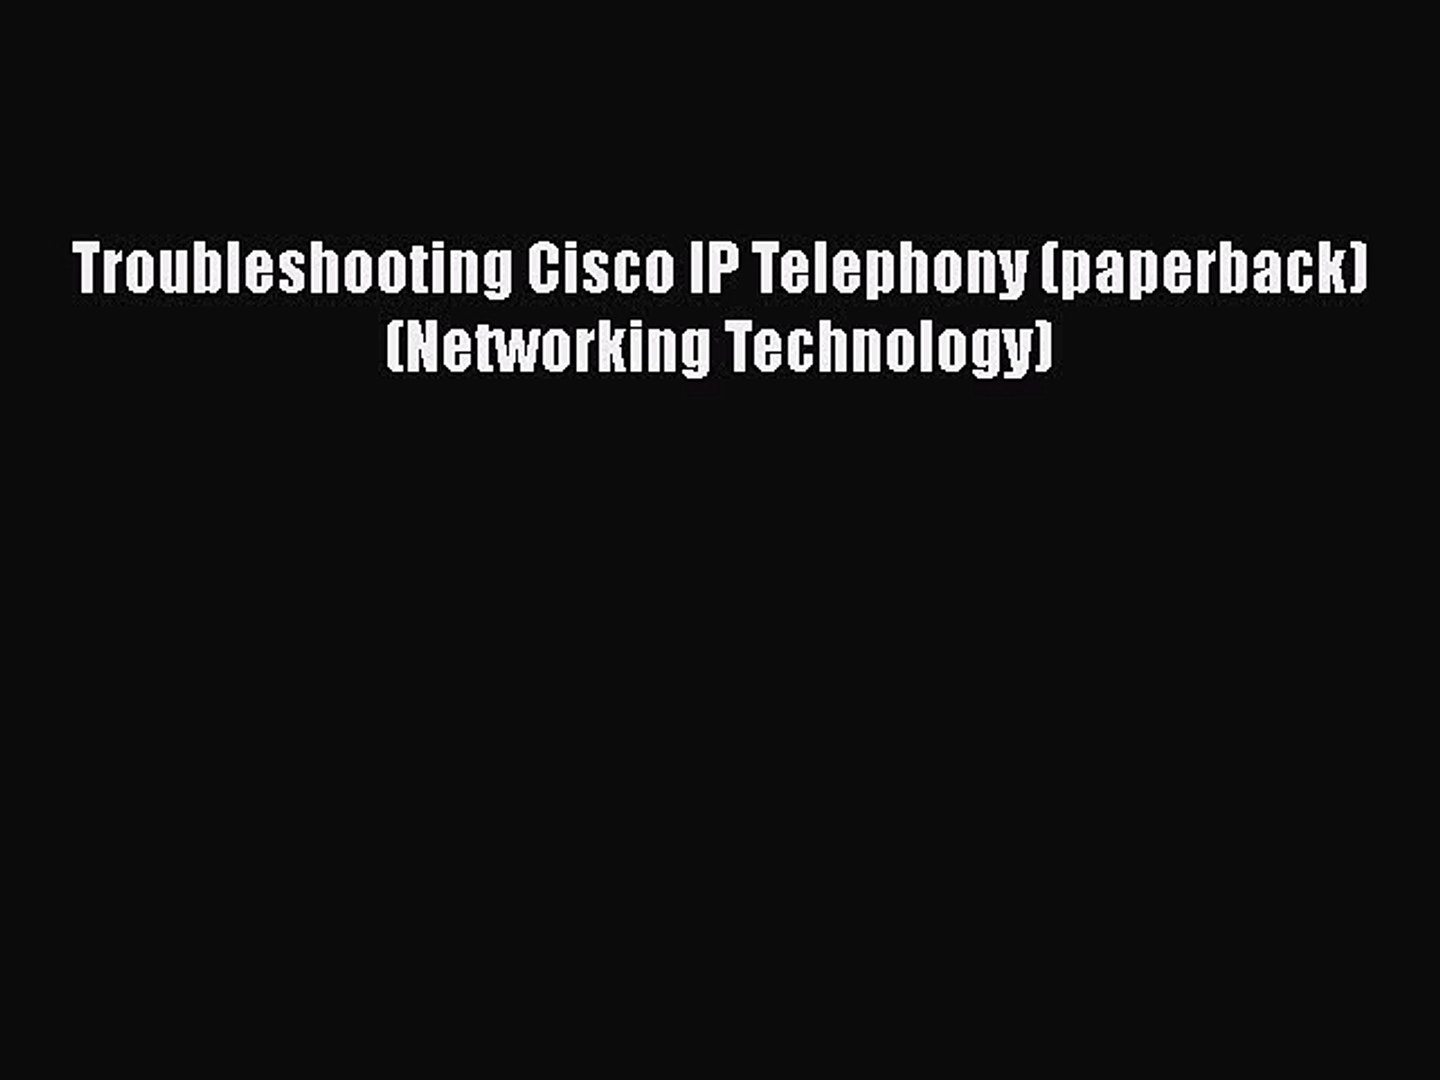 Read Troubleshooting Cisco IP Telephony (paperback) (Networking Technology)  PDF Free